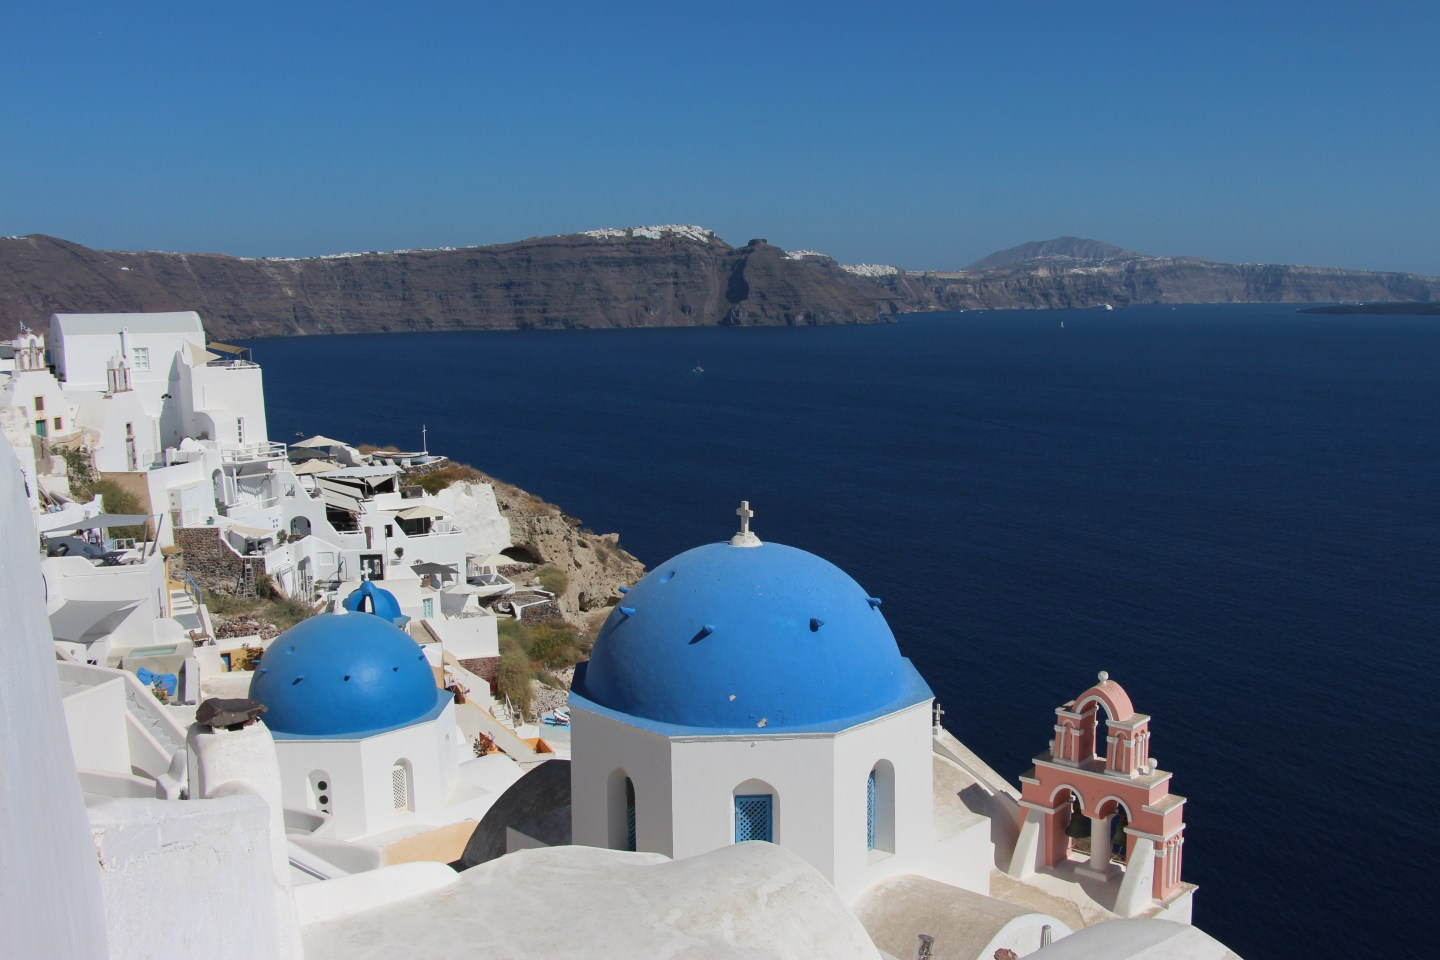 Mia Goes M.I.A. Top things to do in Santorini even if you aren't on your honeymoon